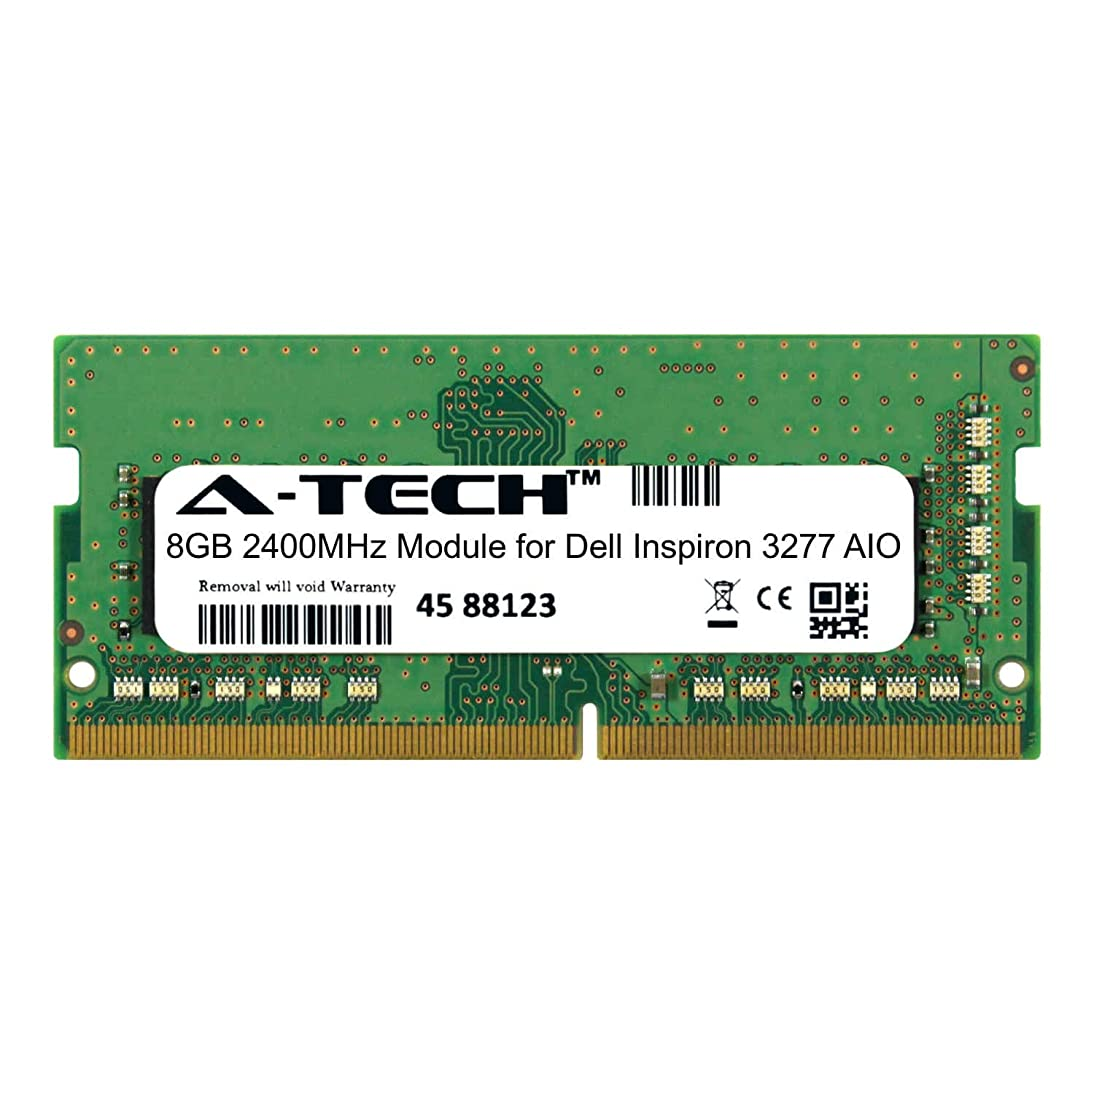 A-Tech 8GB Module for Dell Inspiron 3277 AIO All-in-One Compatible DDR4 2400Mhz Memory Ram (ATMS277793A25827X1) xxbd202081896940